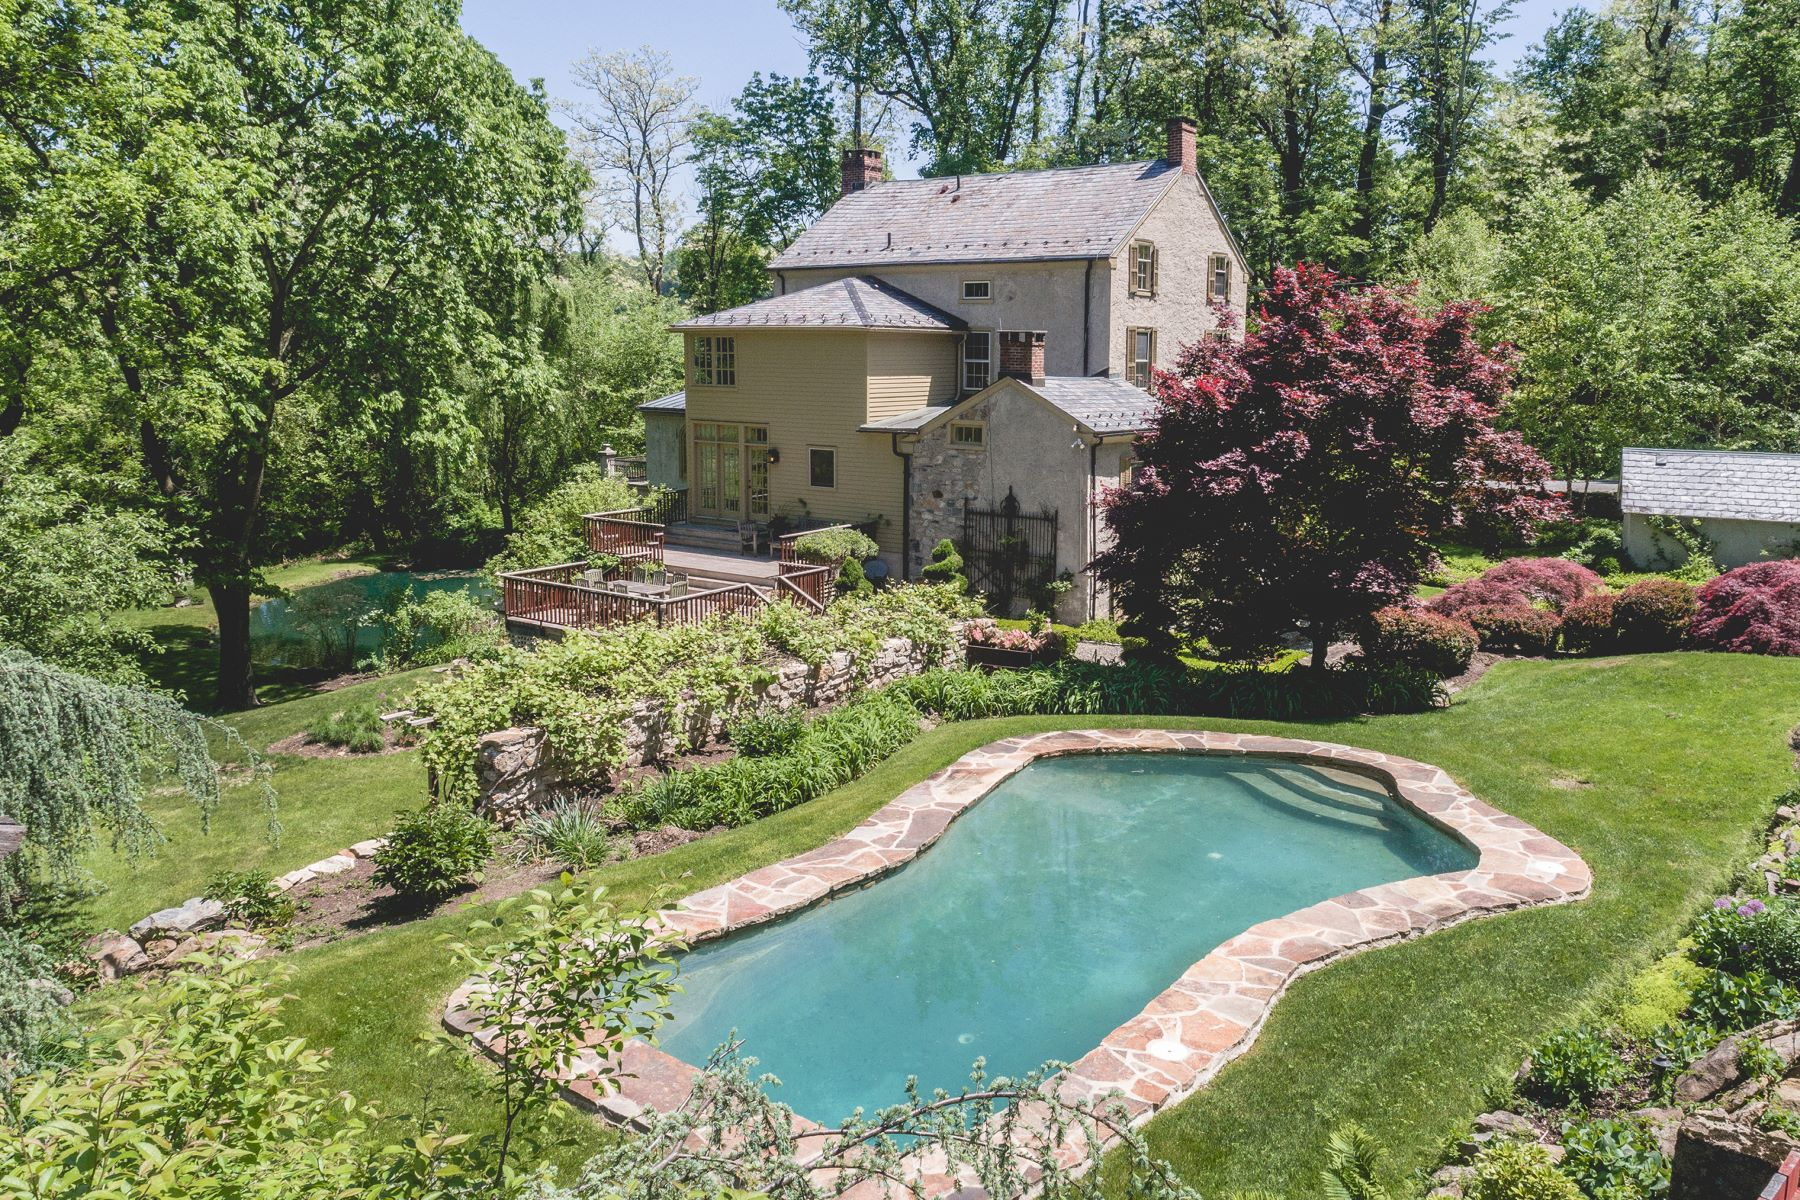 Single Family Home for Sale at 250 Durham Rd Easton, Pennsylvania 18042 United States